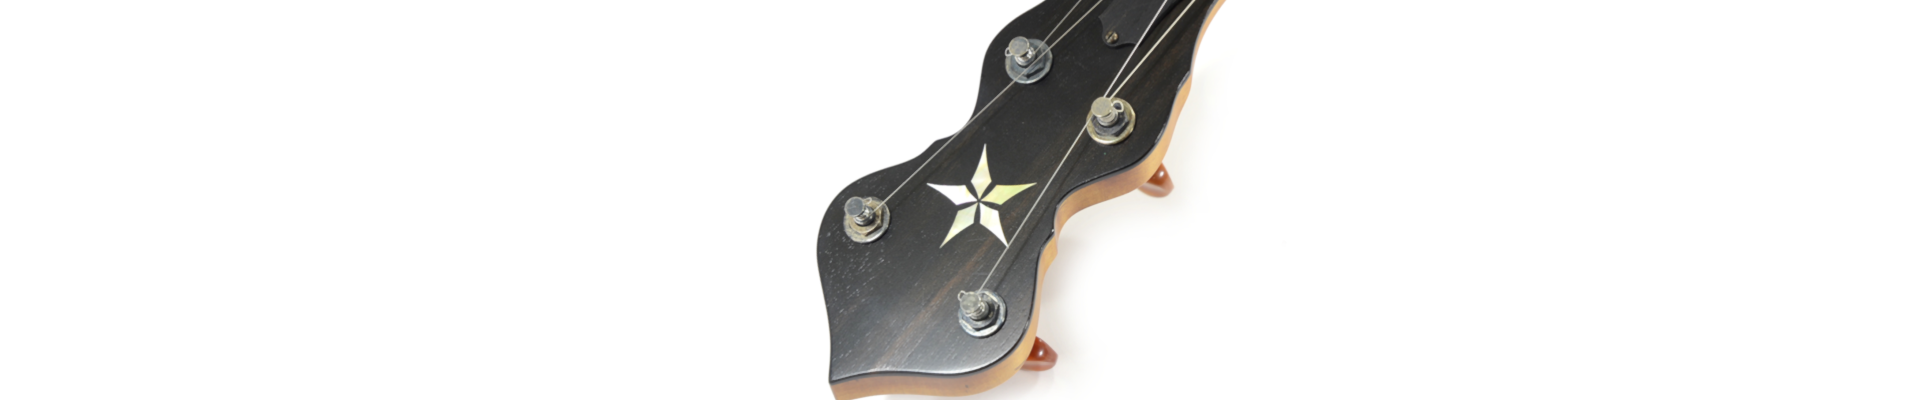 Ome Headstock Image